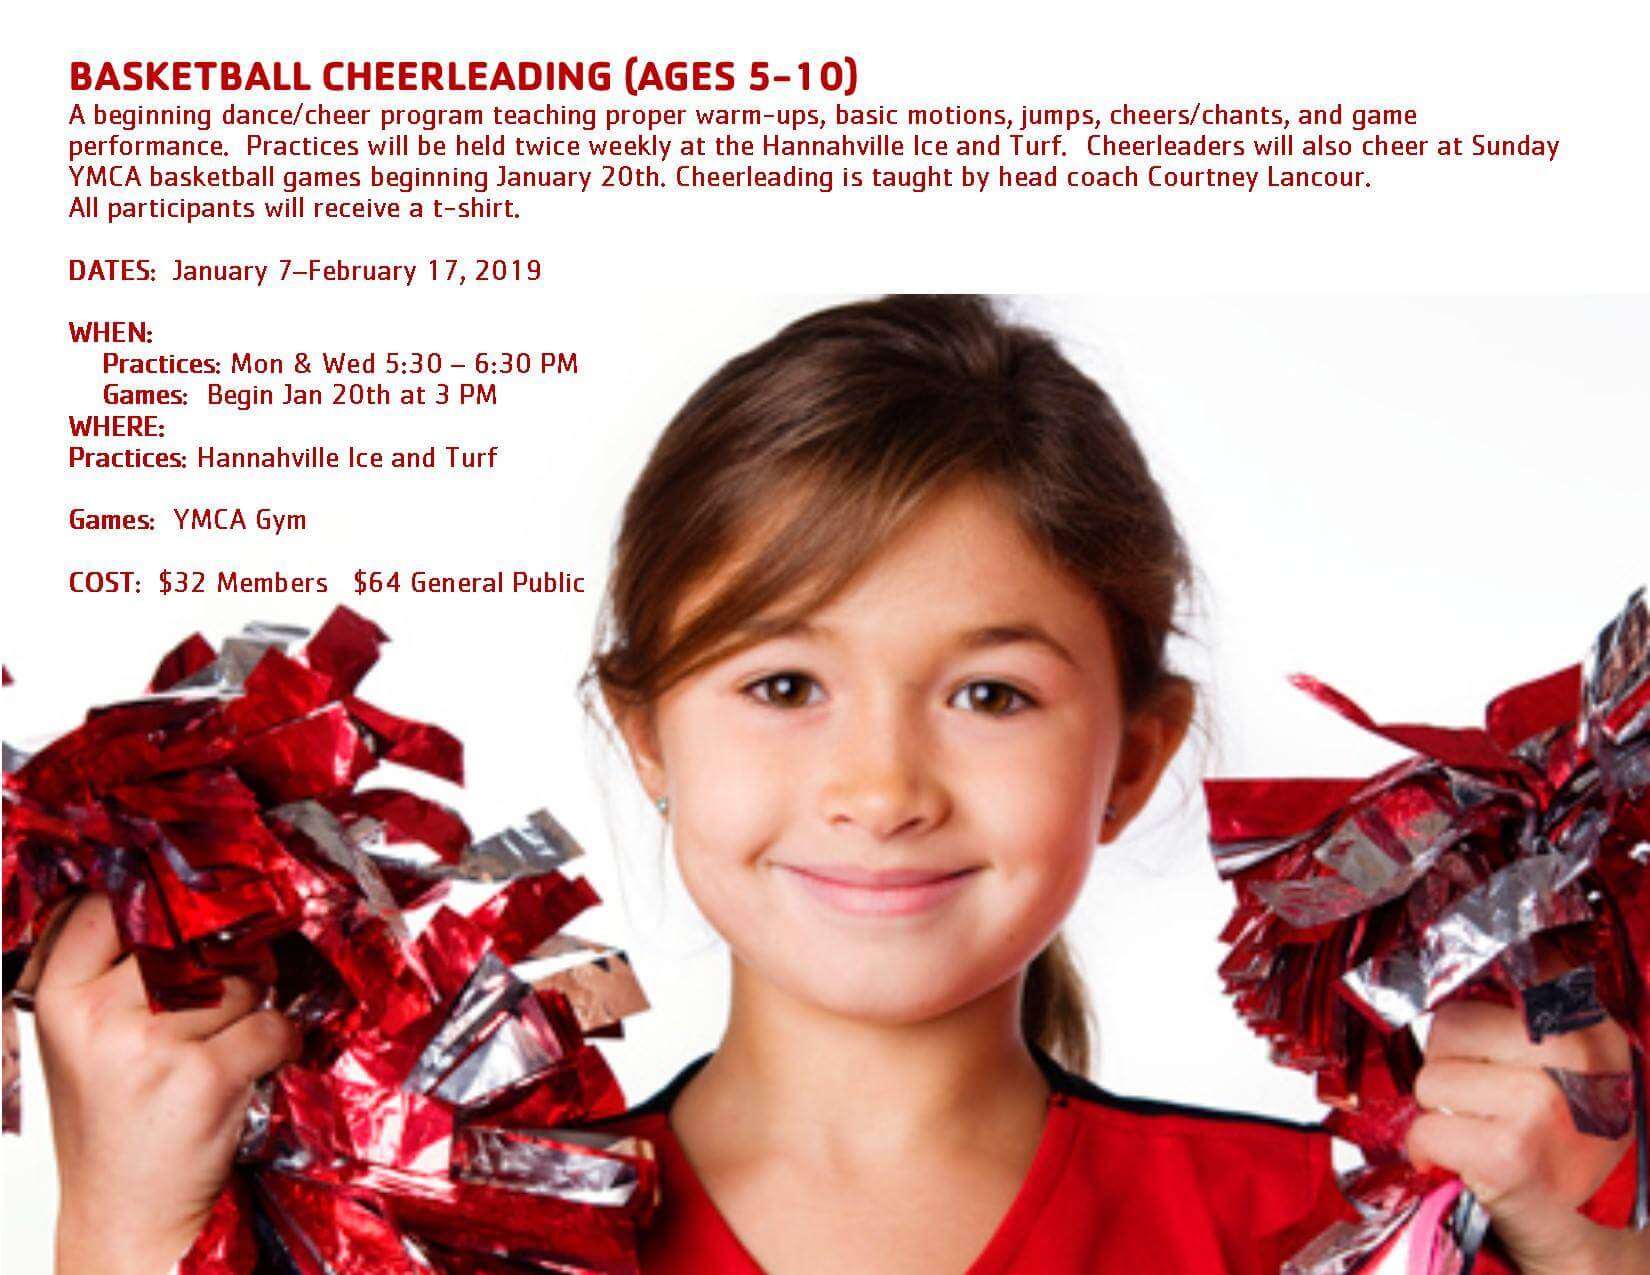 Basketball cheerlinging (ages 5-10). A beginning dance/cheer program teaching proper warm-ups, basic motions, jumps, cheers/chants, and game performance. Practices will be held twice weekly at the Hannaville Ice and Turf. Cheerleaders will also cheer at Sunday YMCA basketball games beginning January 20th. Cheerling is taught by head coach Courtney Lancour. All participants will receive a t-shirt. Dates January 7-February 17, 2019. When Practices: Mon. & Wed. 5:30-6:30 pm. Games: Begin Jan 20th at 3 pm. Where: Practices: Hanaville Ice and Turf. Games: YMCA Gym. Cost: $32 Members; $64 General Public